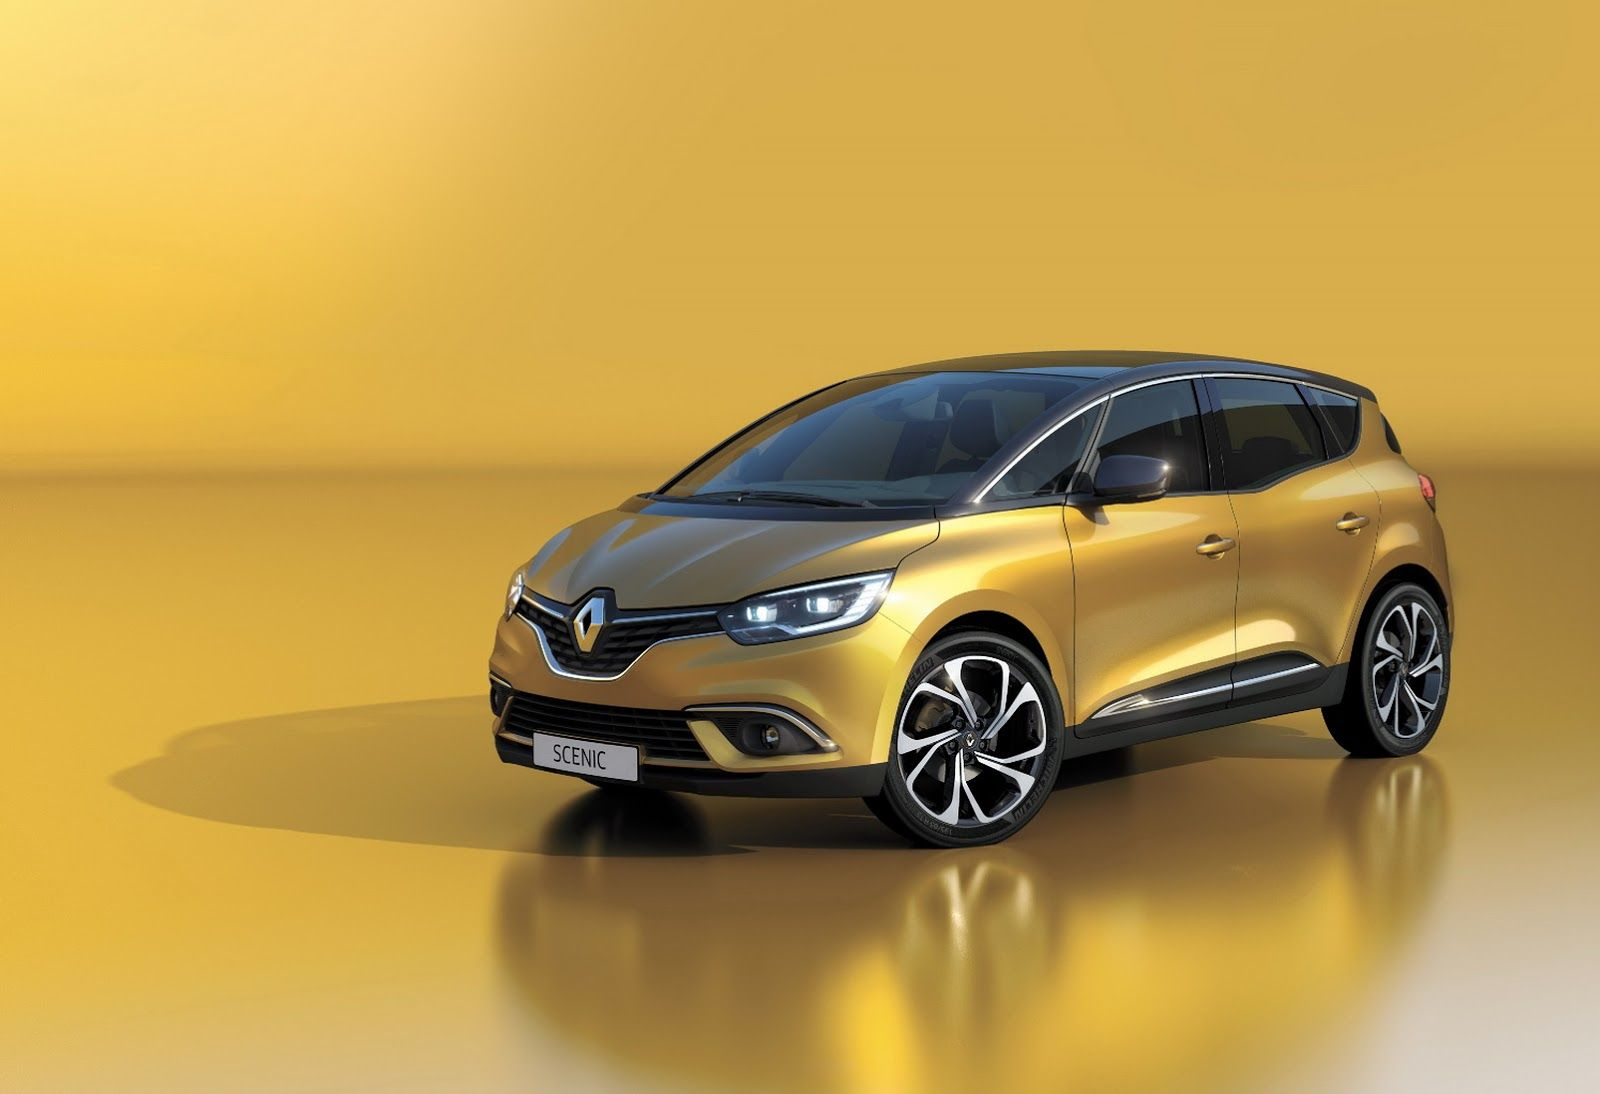 New Renault Scenic Blurs The Styling Line Between Minivans And